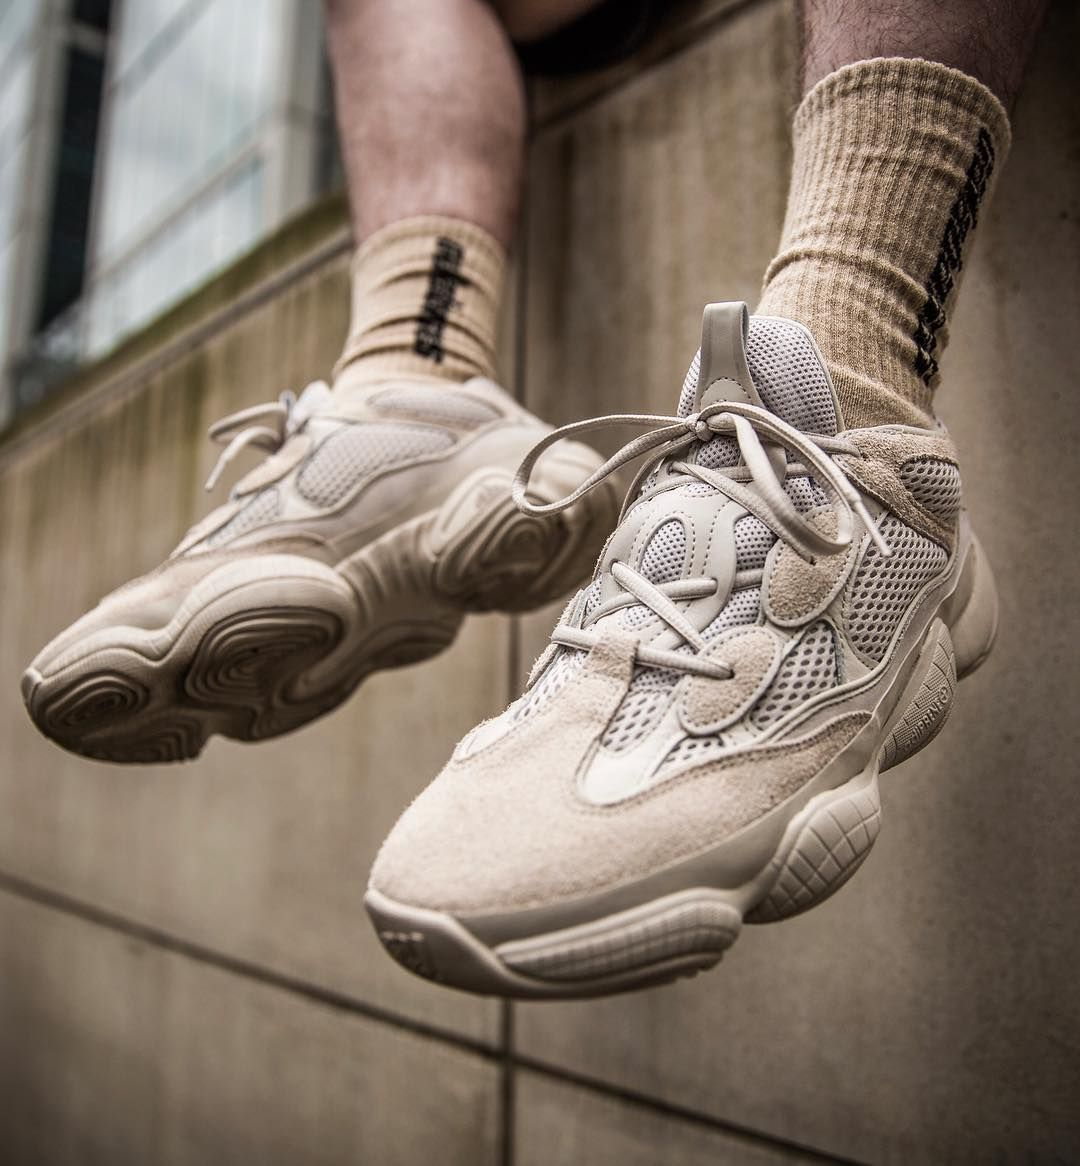 finest selection ef197 f13ba Shop Newest UA Yeezy 500 - Artemisyeezy Special coupon code ...